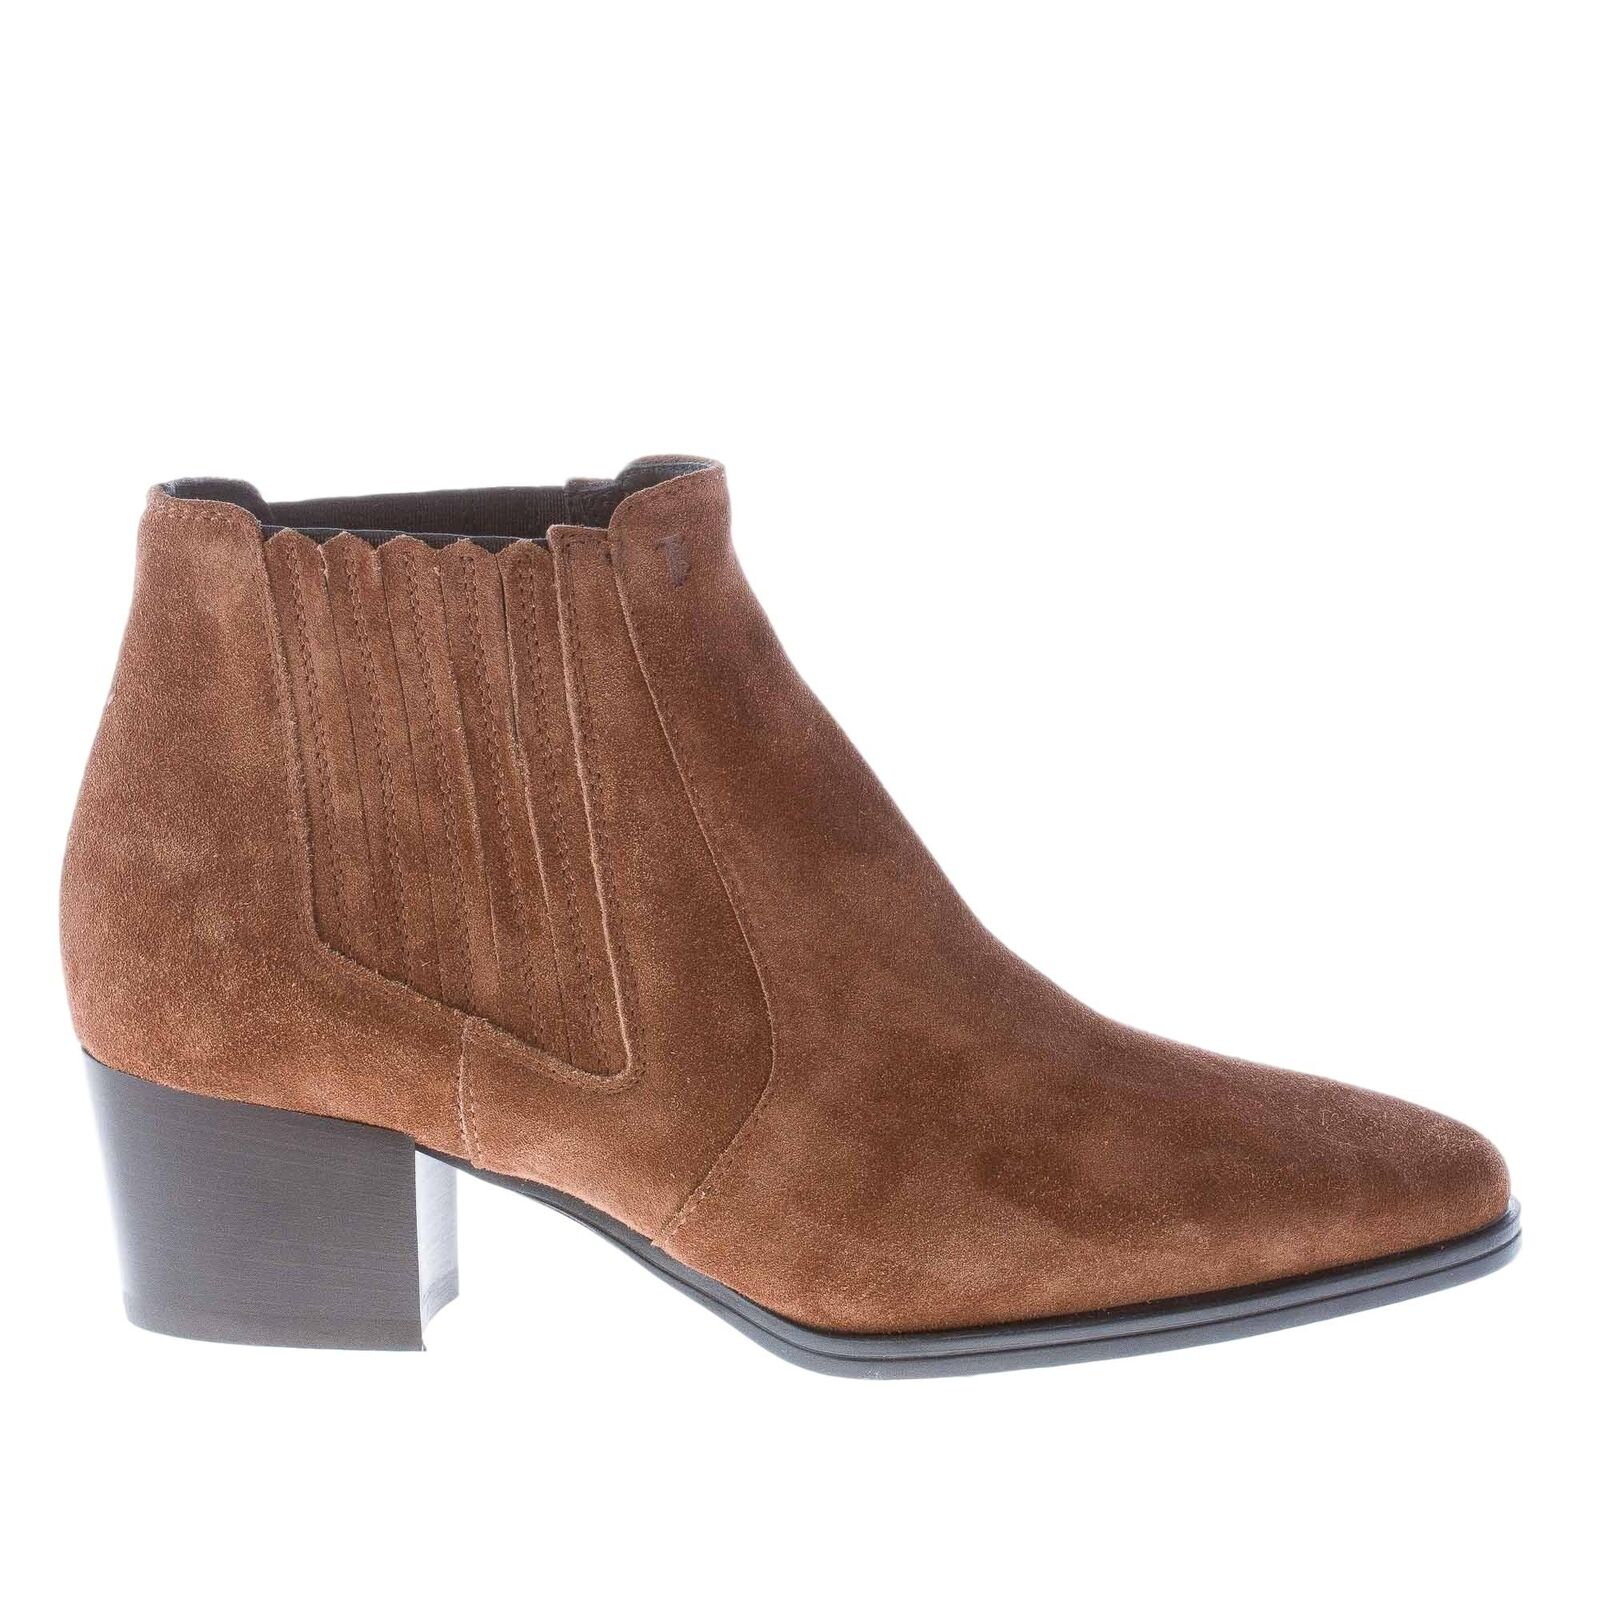 TOD'S damen schuhe braun suede pointy toe ankle Stiefel elasticated insets heel 5 cm